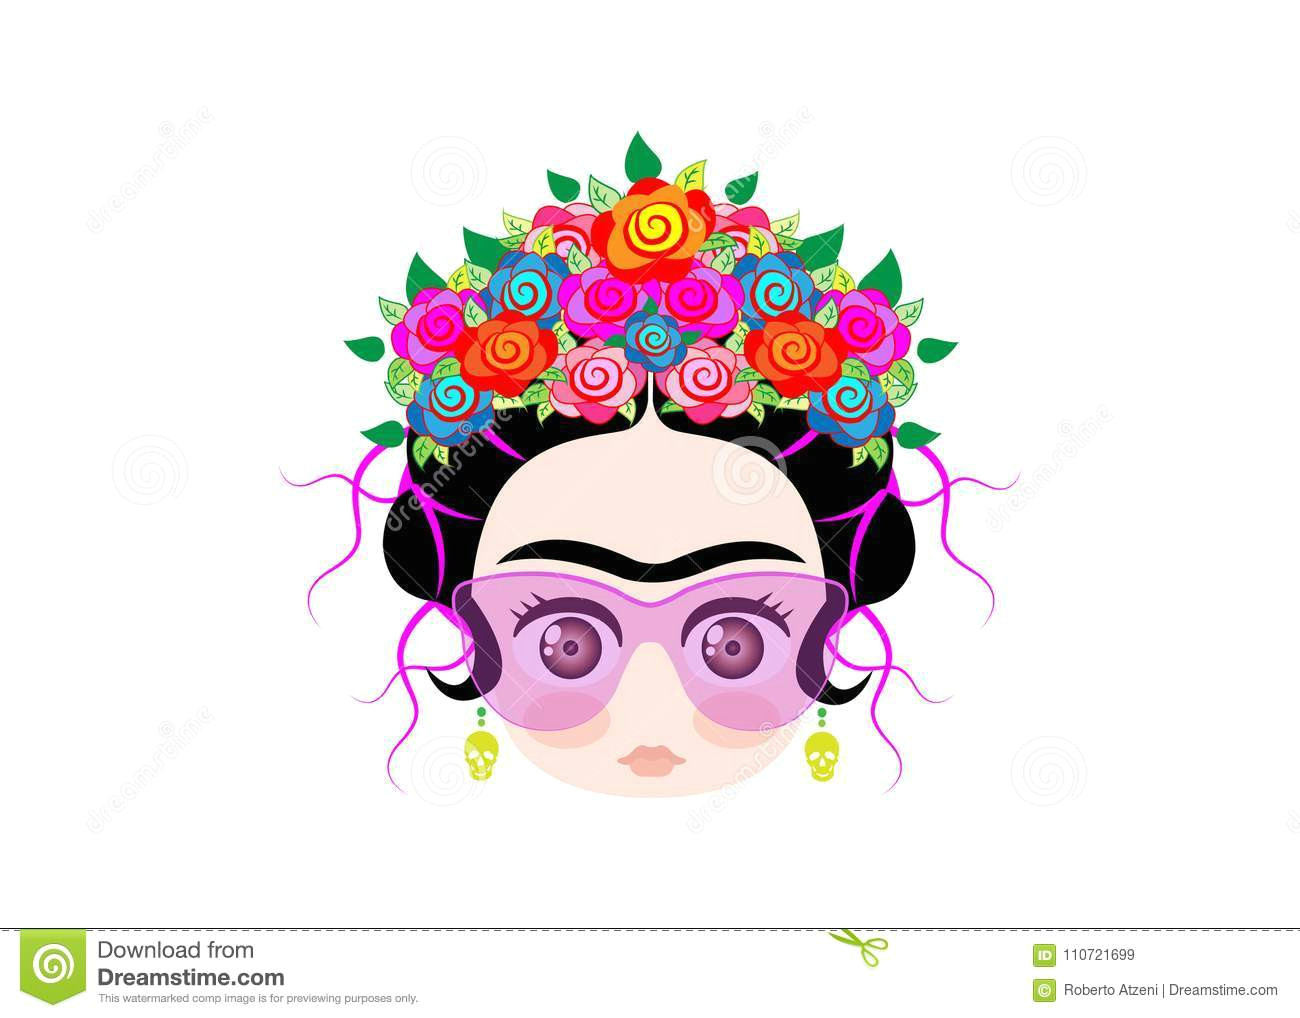 emoji baby frida kahlo with crown of colorful flowers and glasses